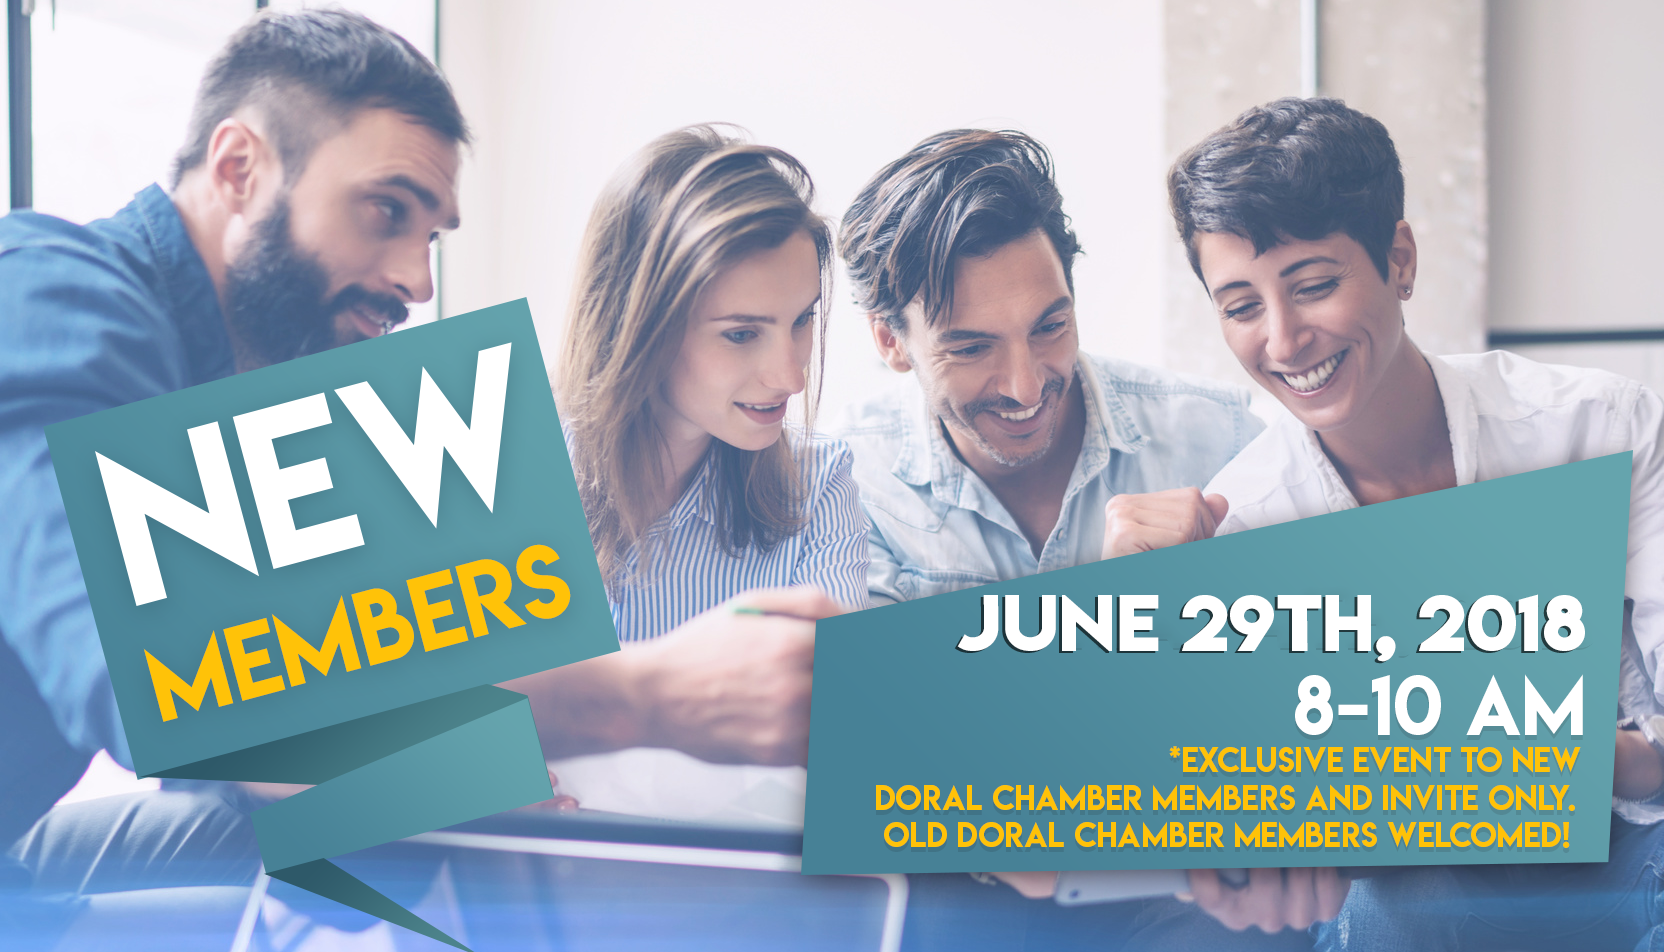 New Members, a Doral Chamber of Commerce event.